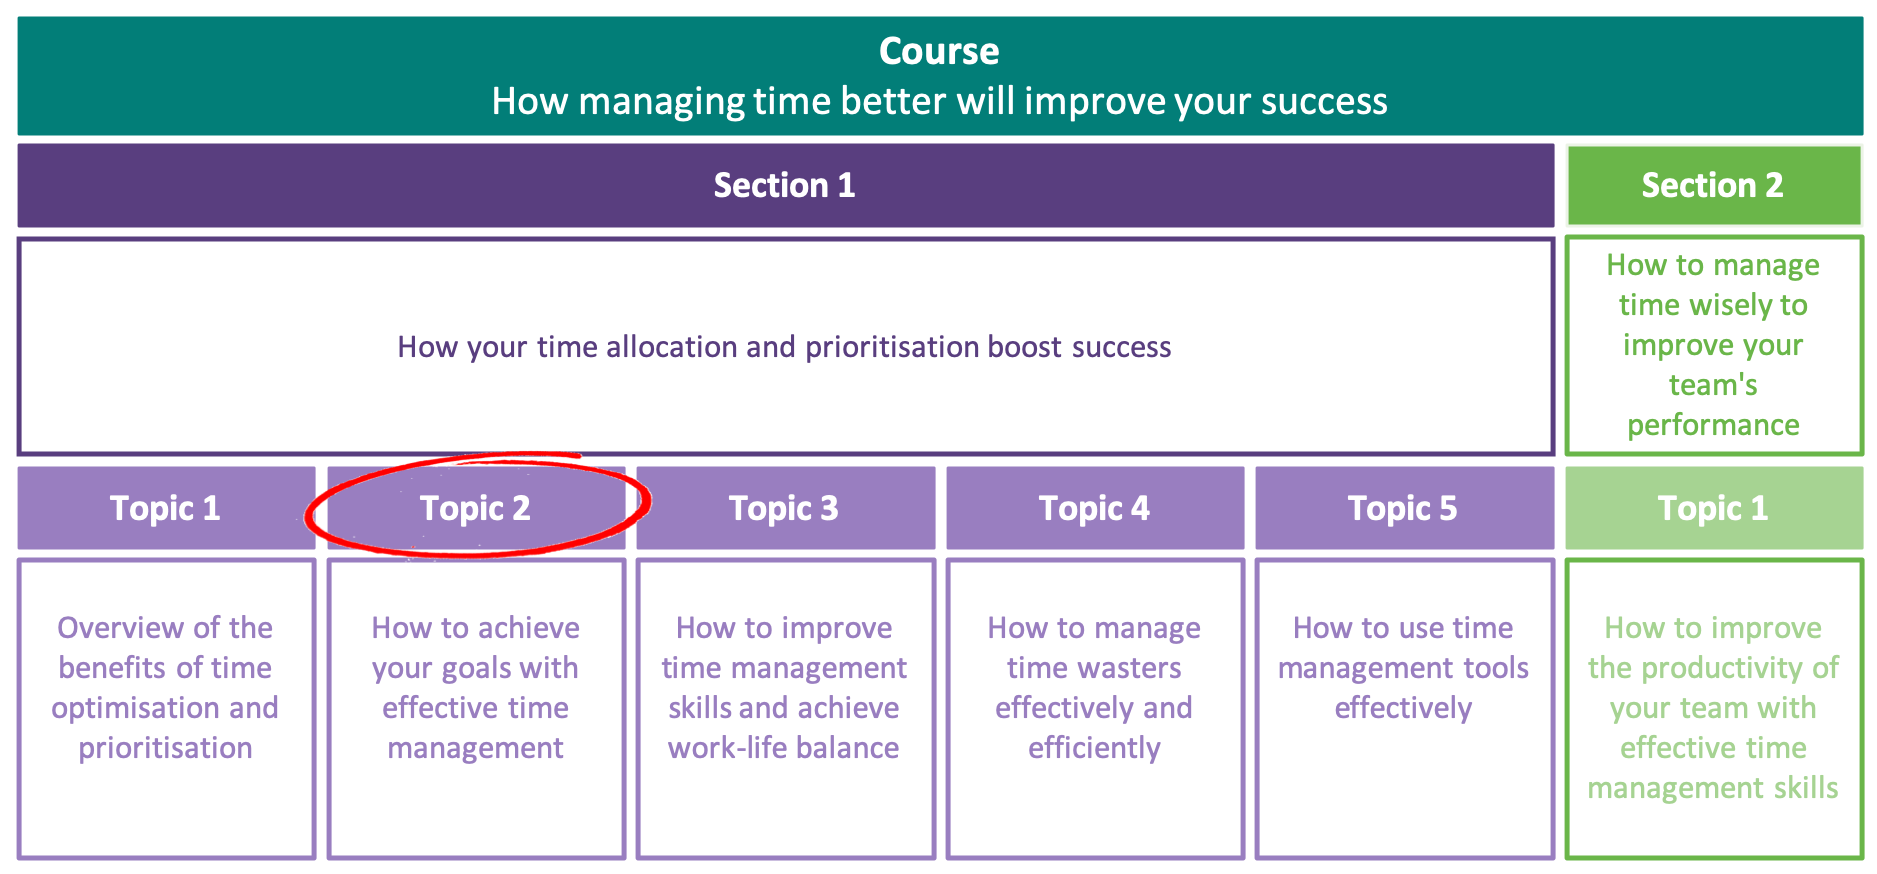 How to achieve your goals with effective time management